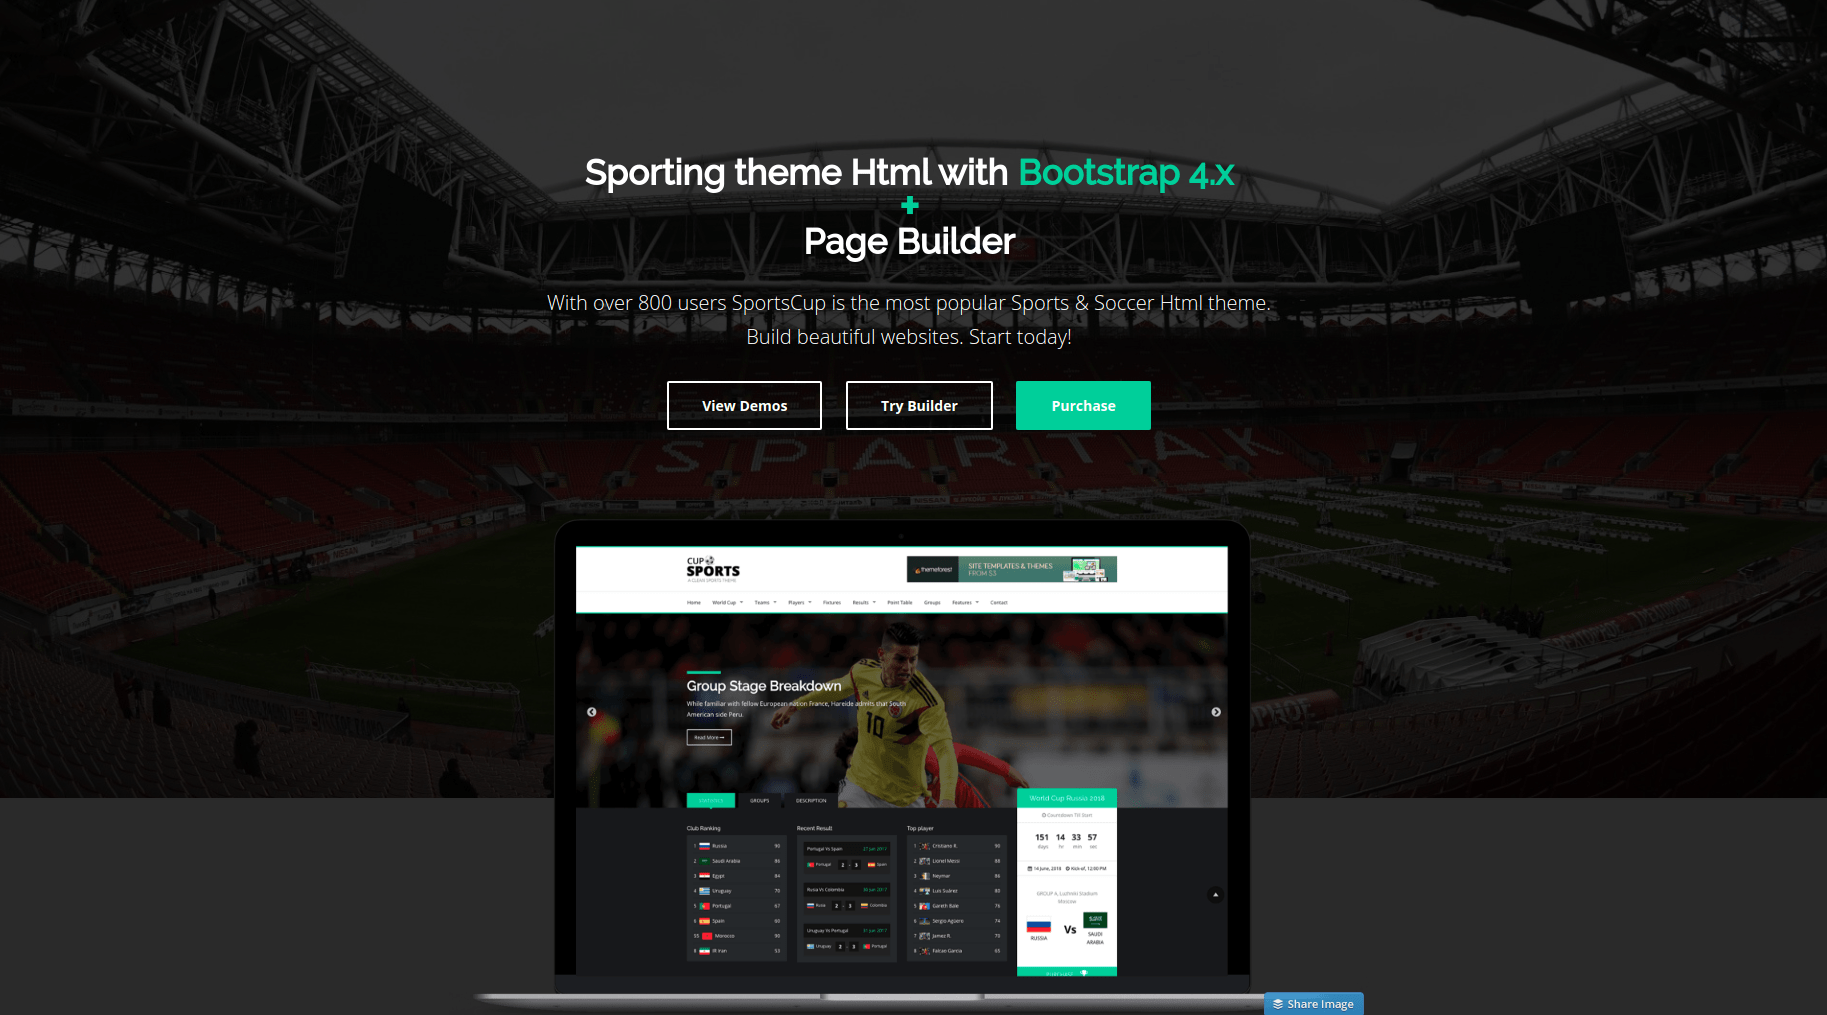 sports page builder